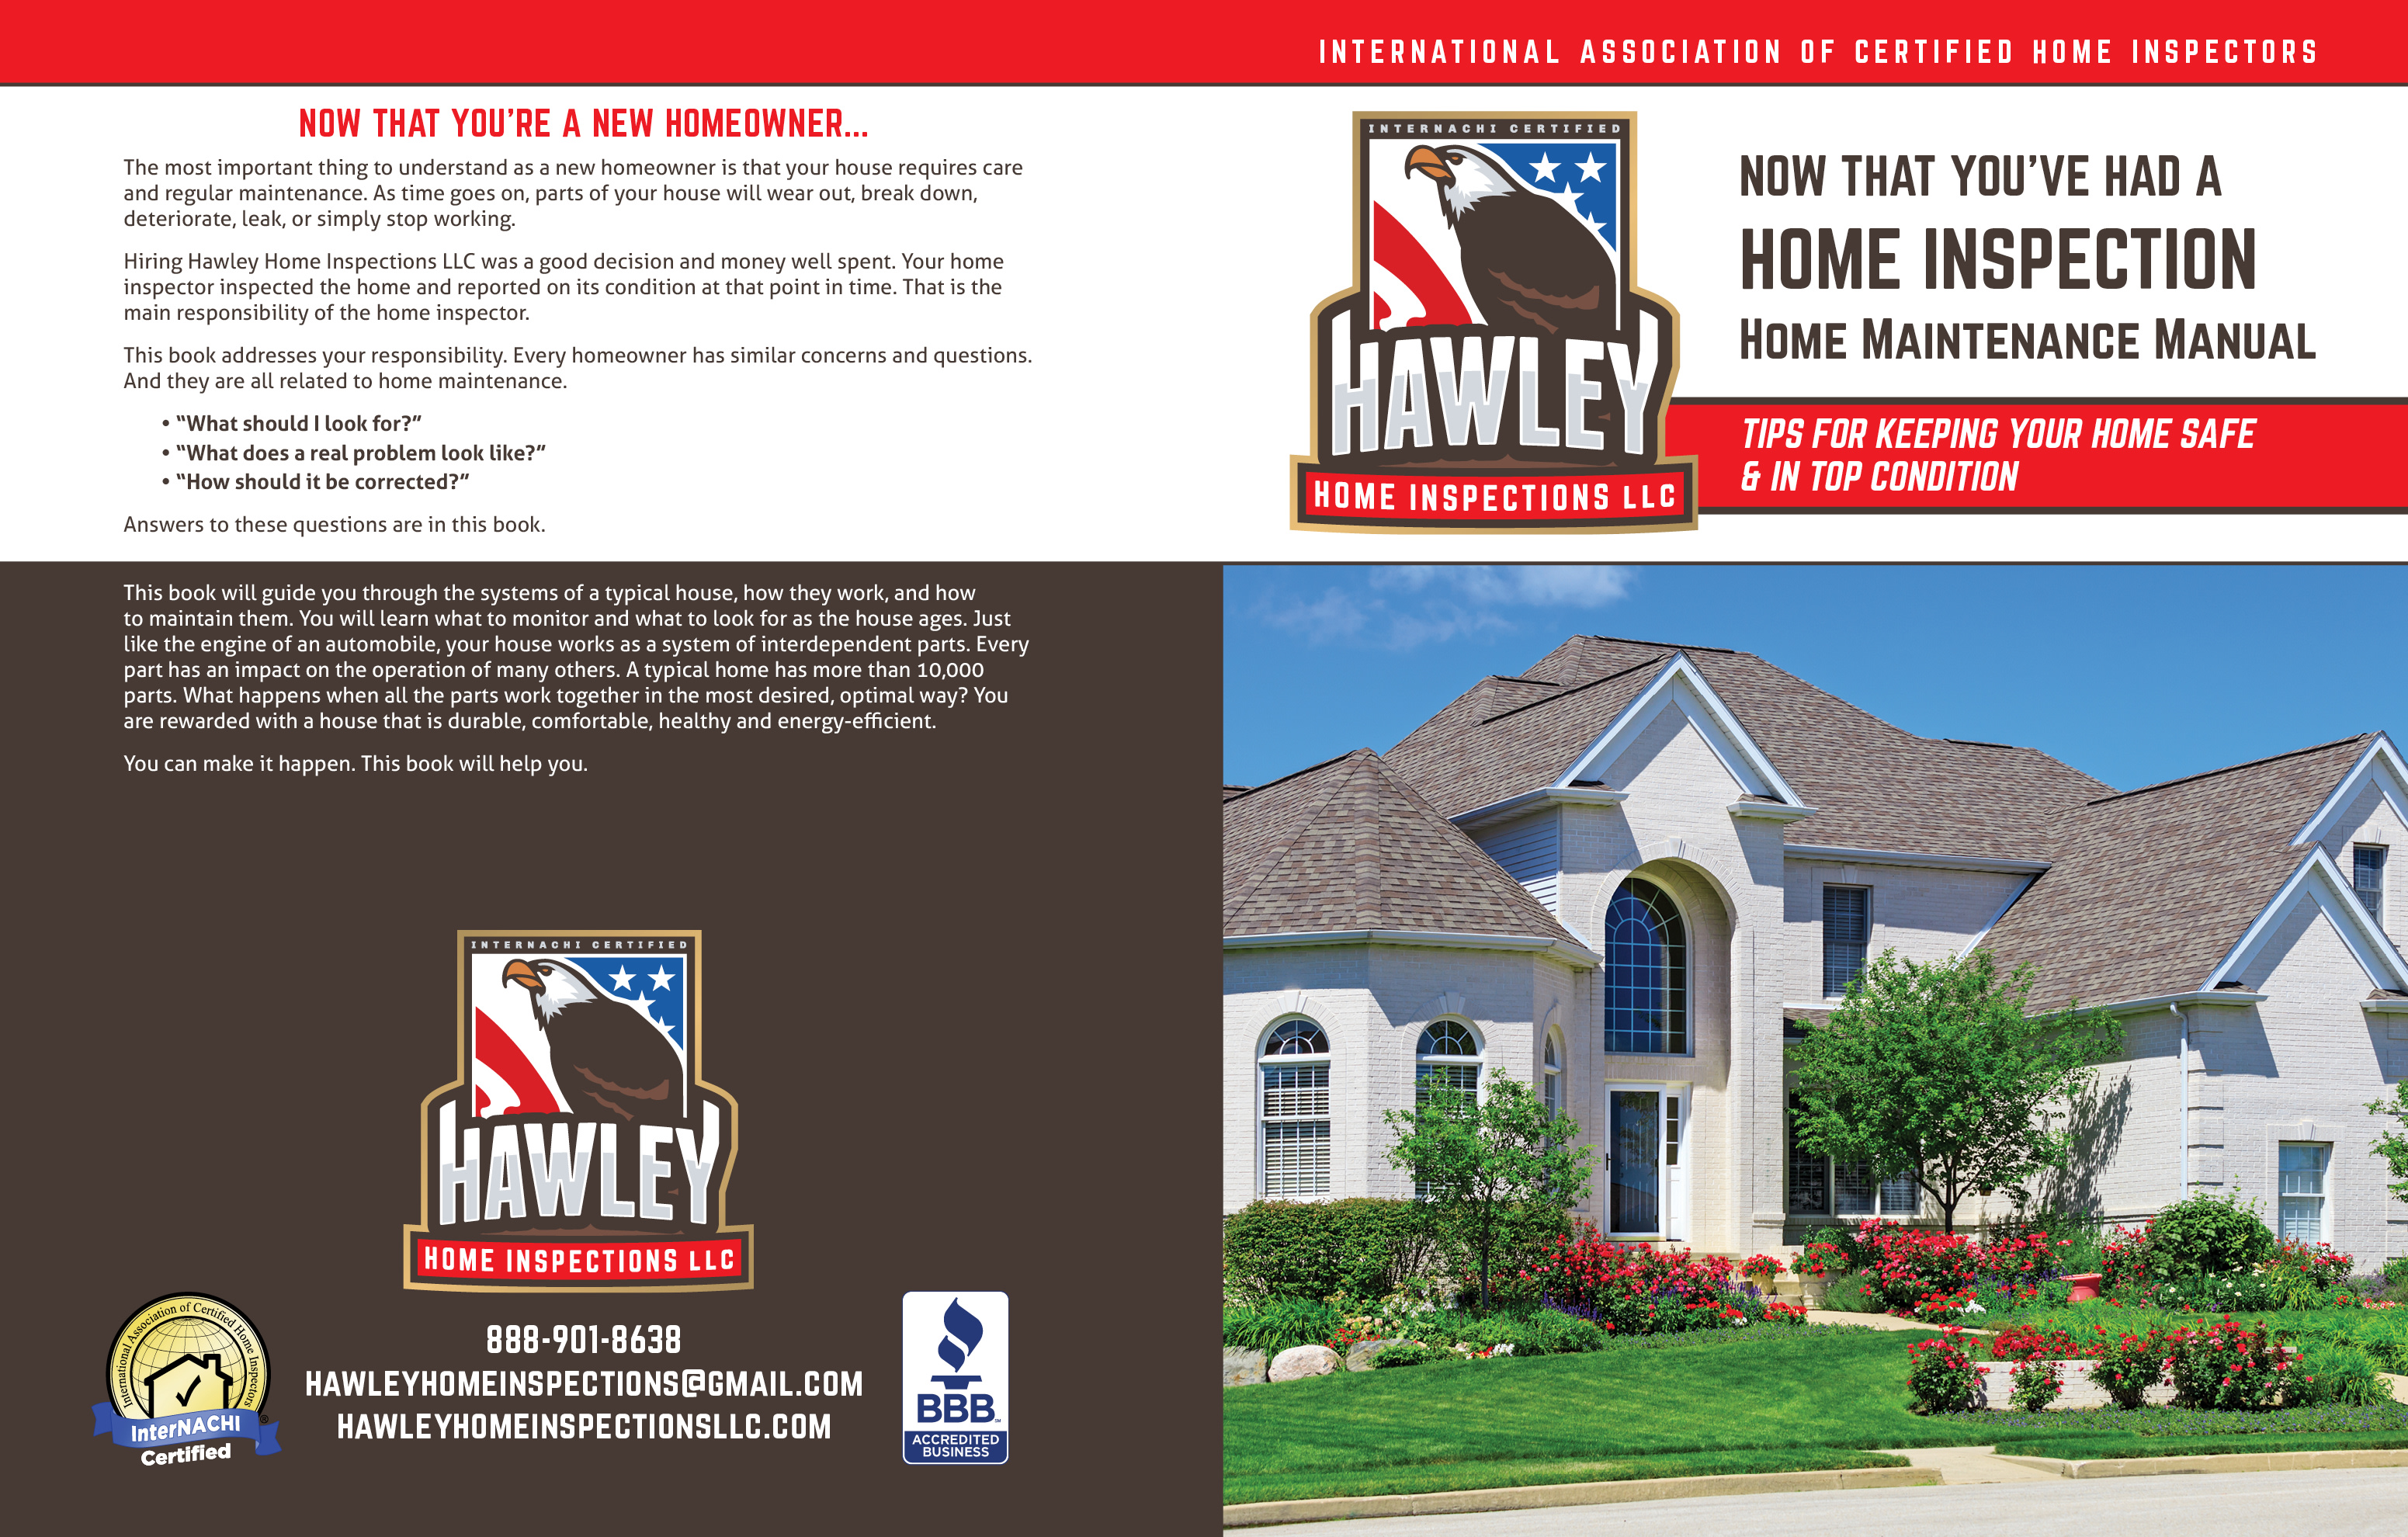 Custom Home Maintenance Book for Hawley Home Inspections